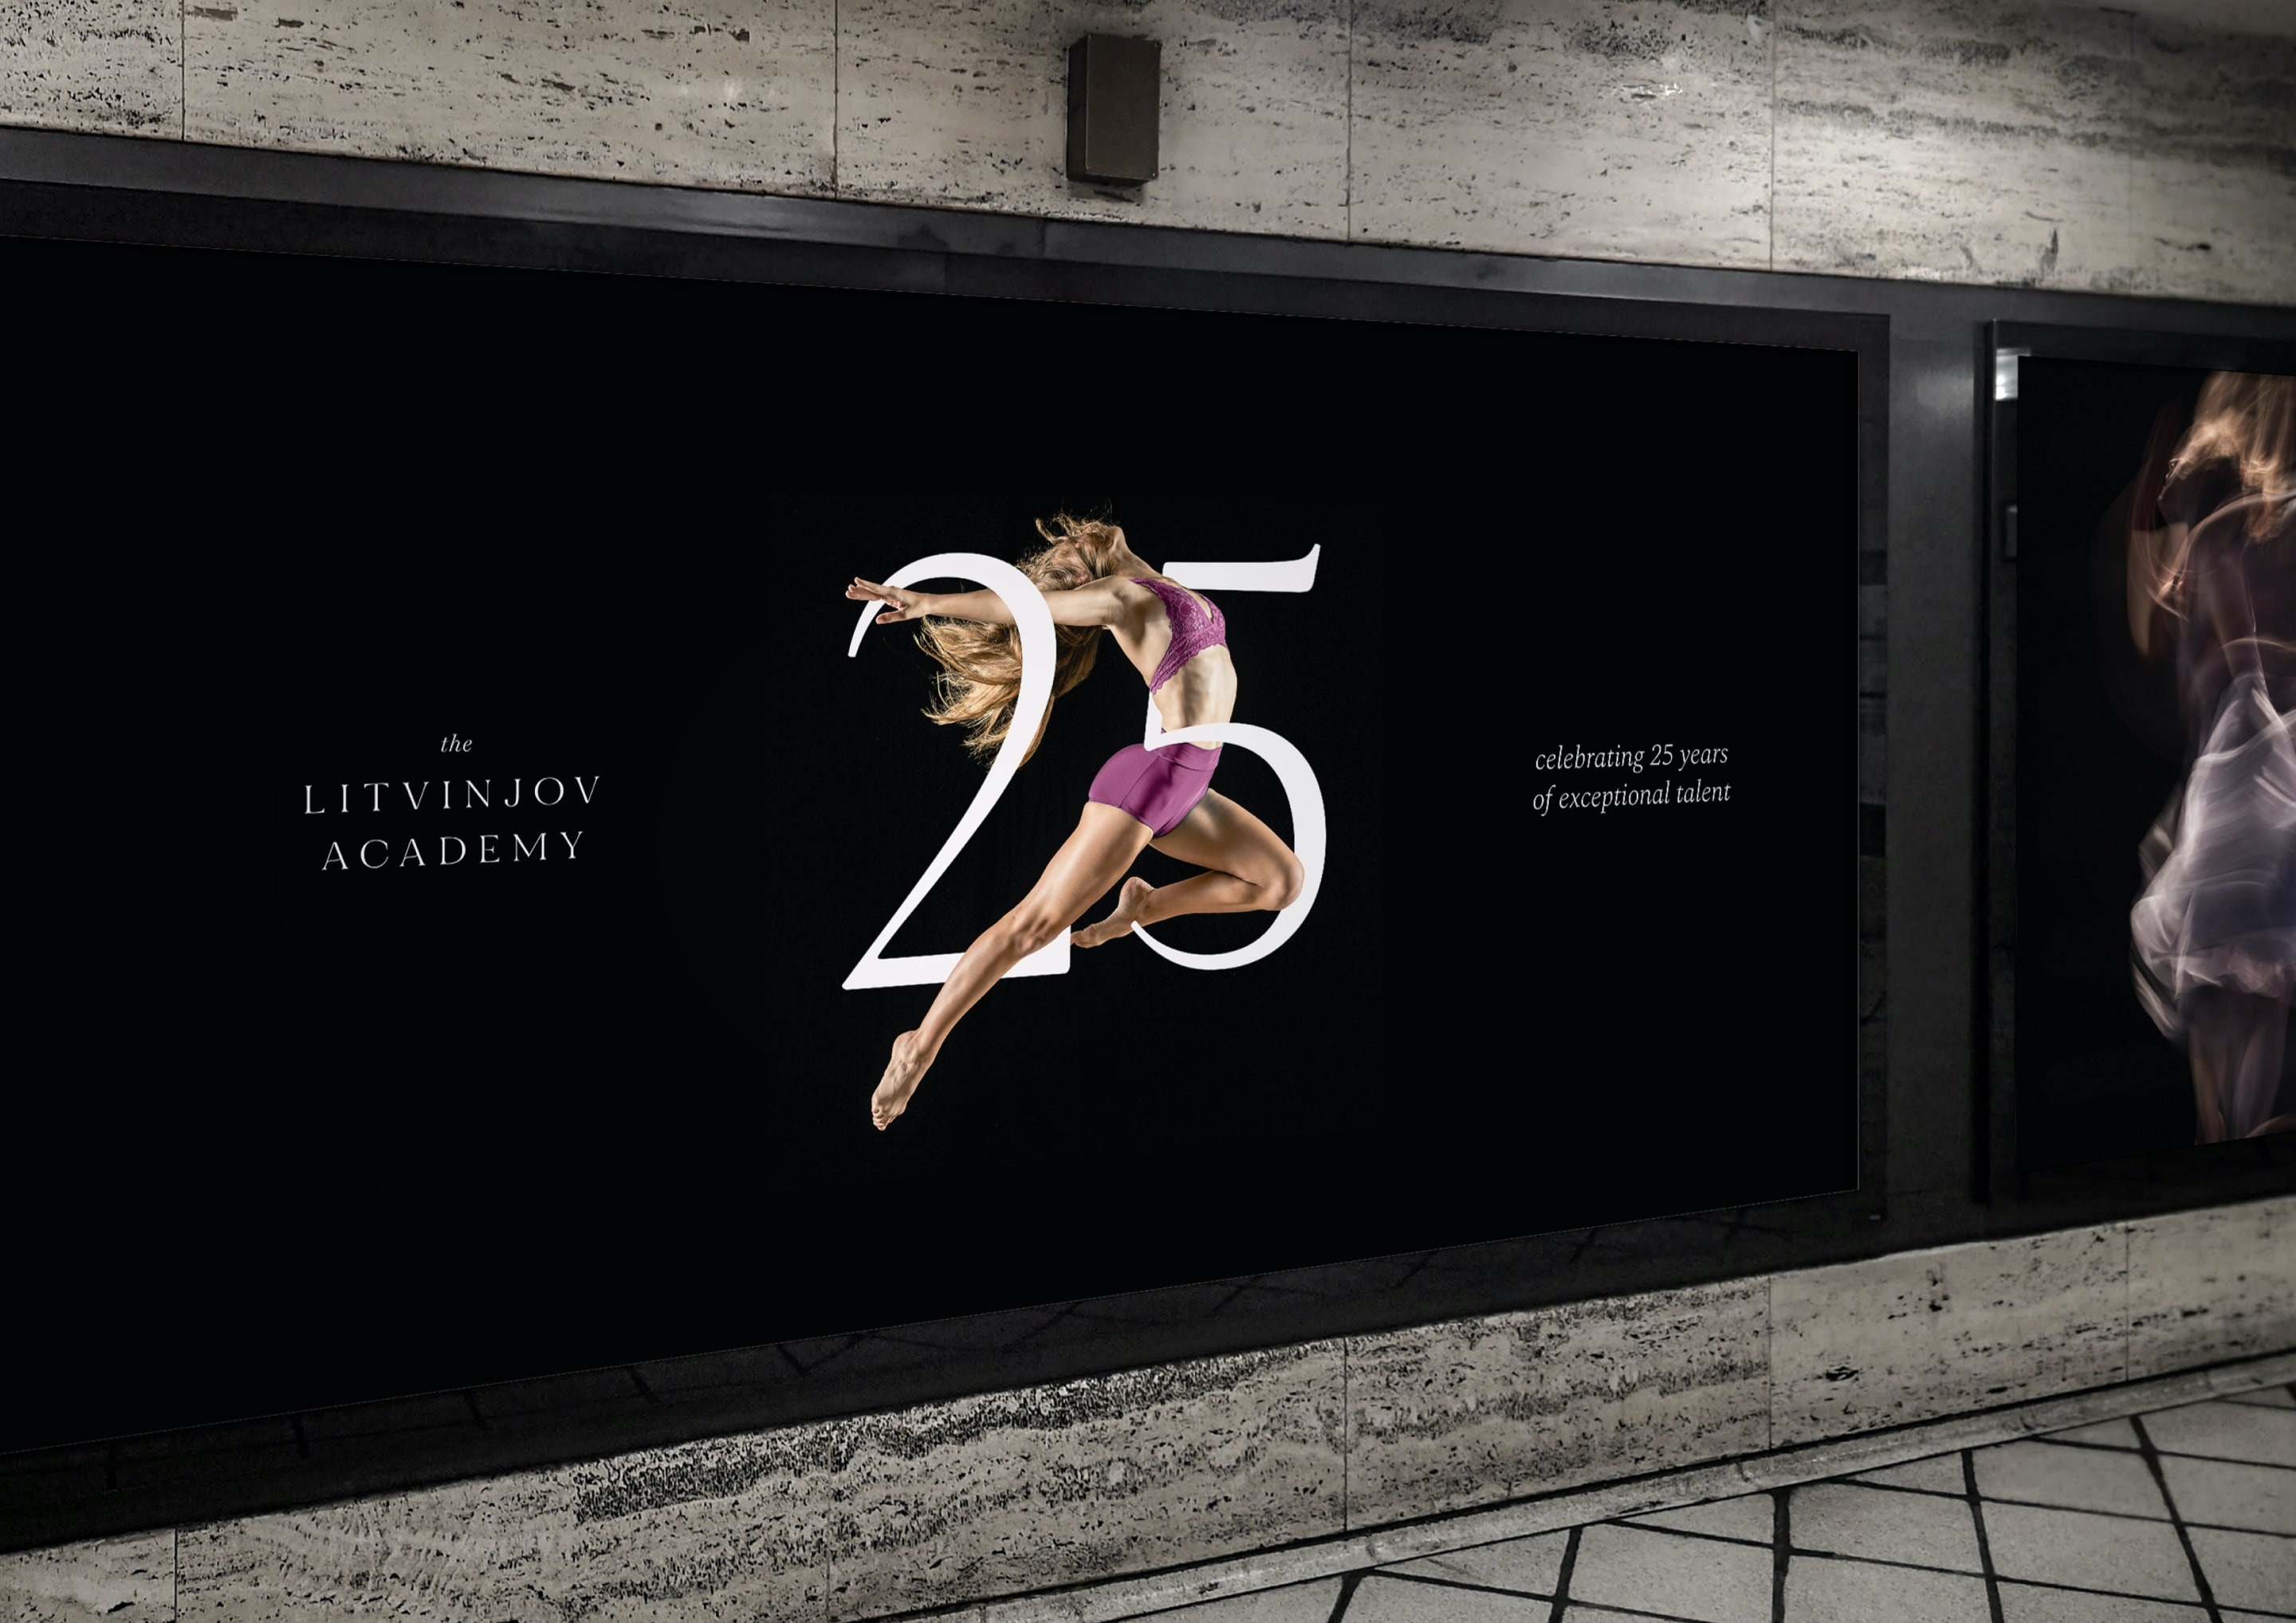 London billboard and advert design for ballet and contemporary dance school, The Litvinjov Academy